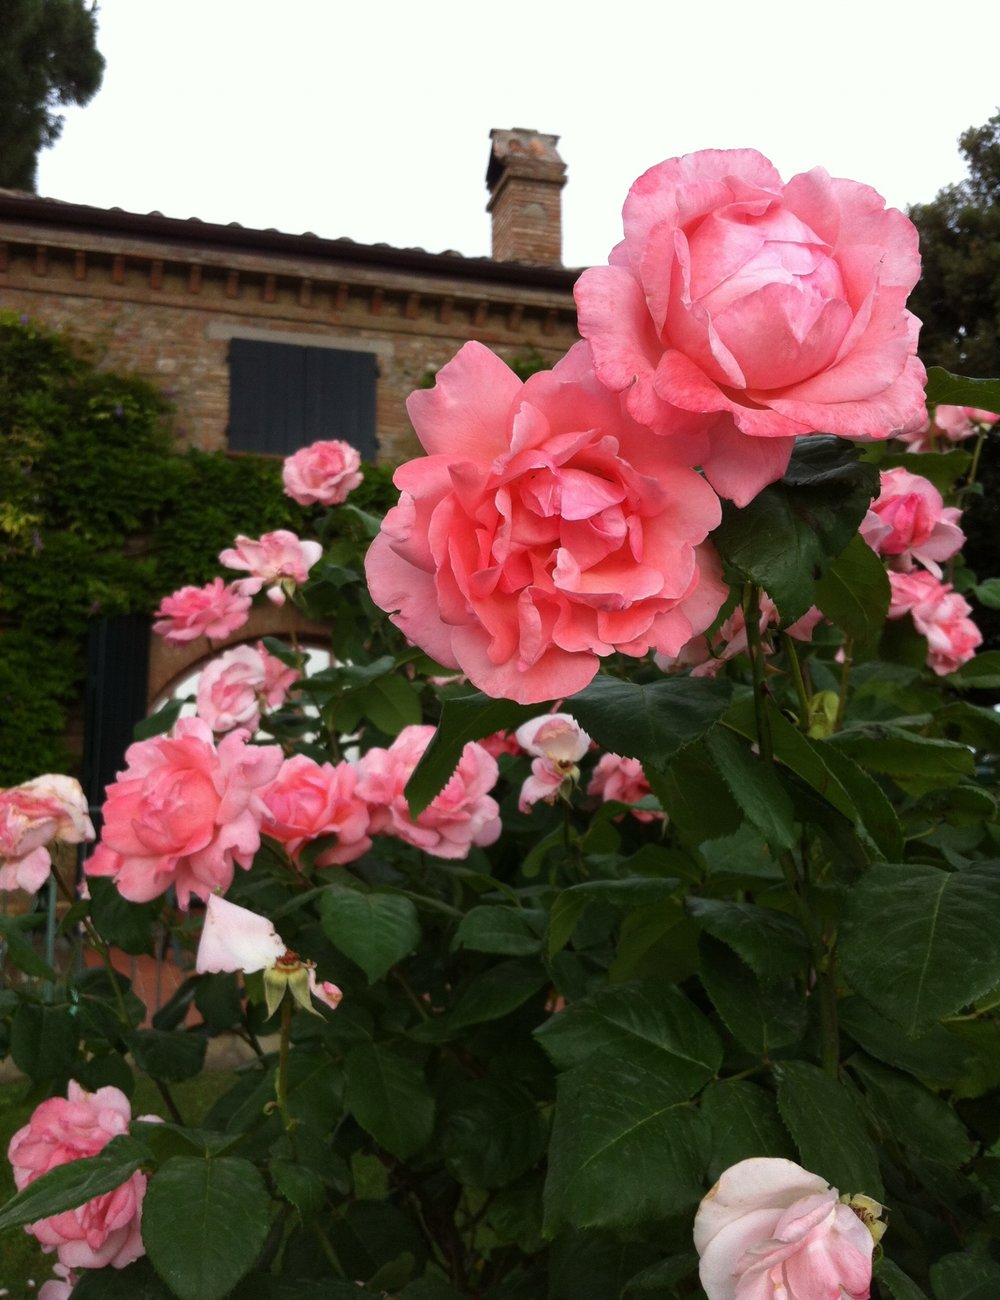 roses-and-roofline-umbria.jpg